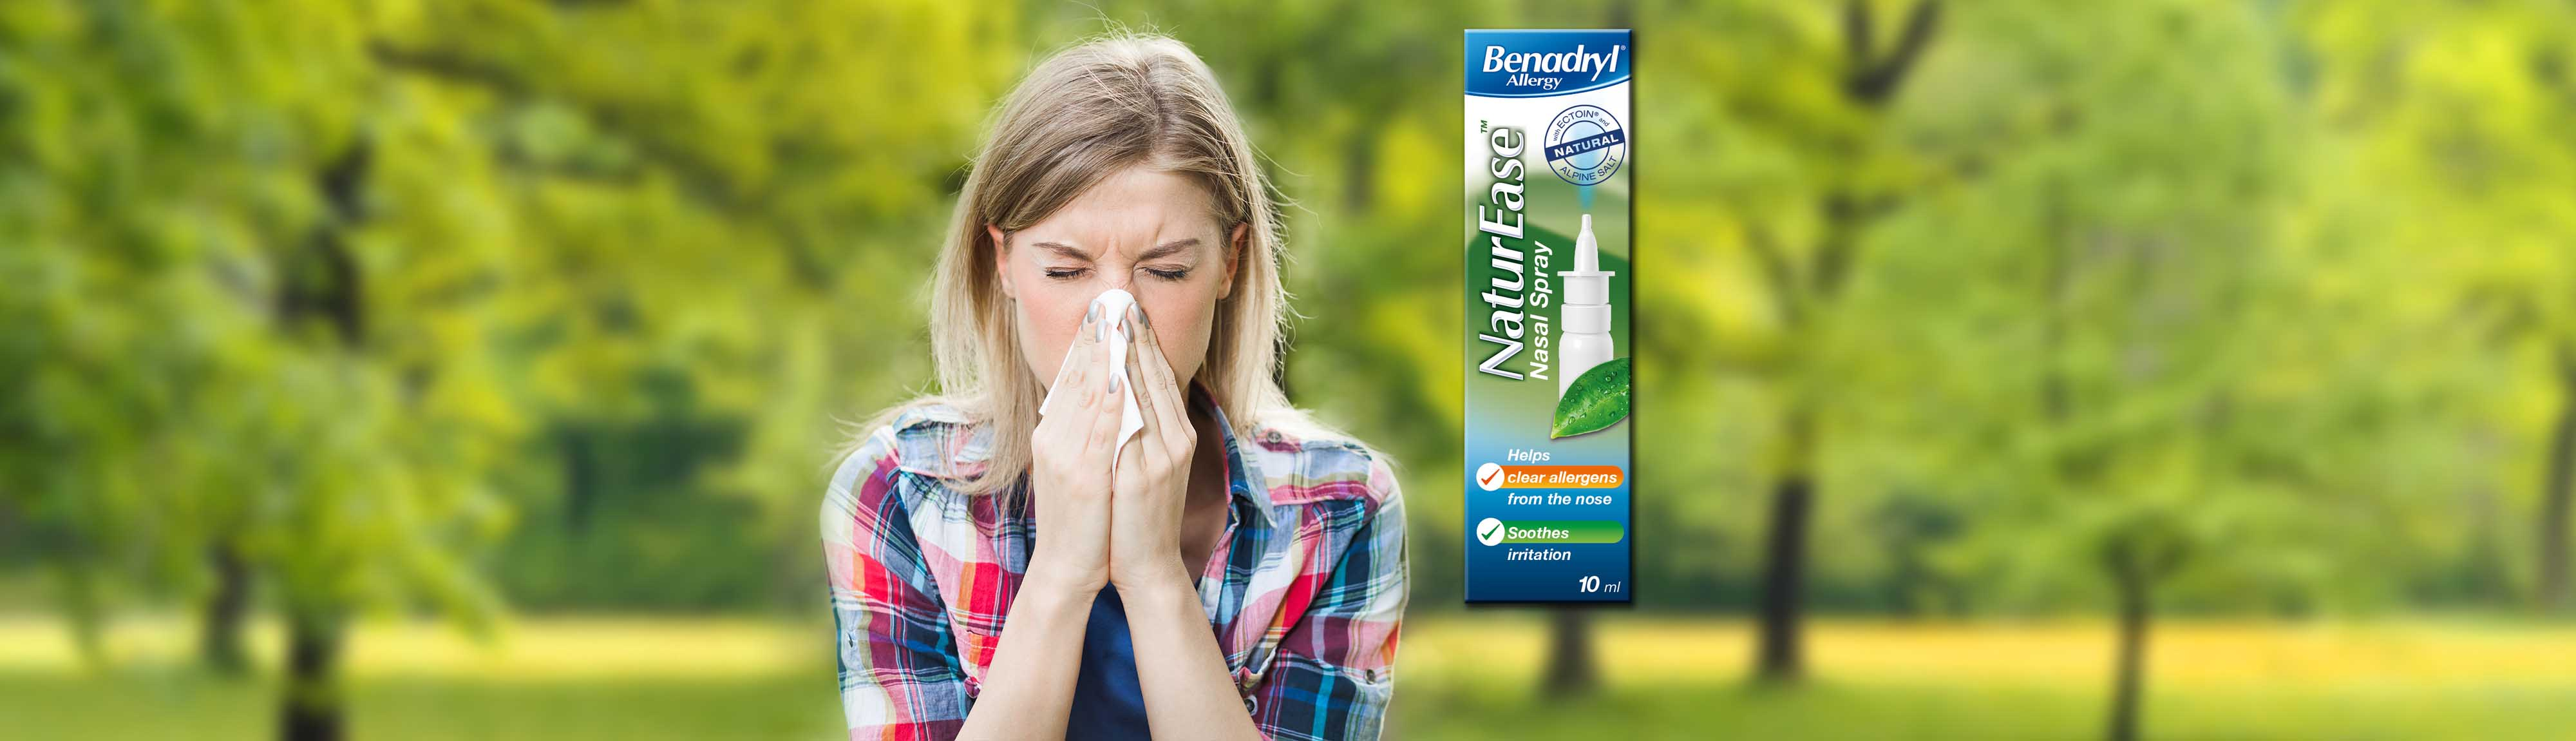 Benadryl NaturEase Nasal Spray helps clear allergens from the nose